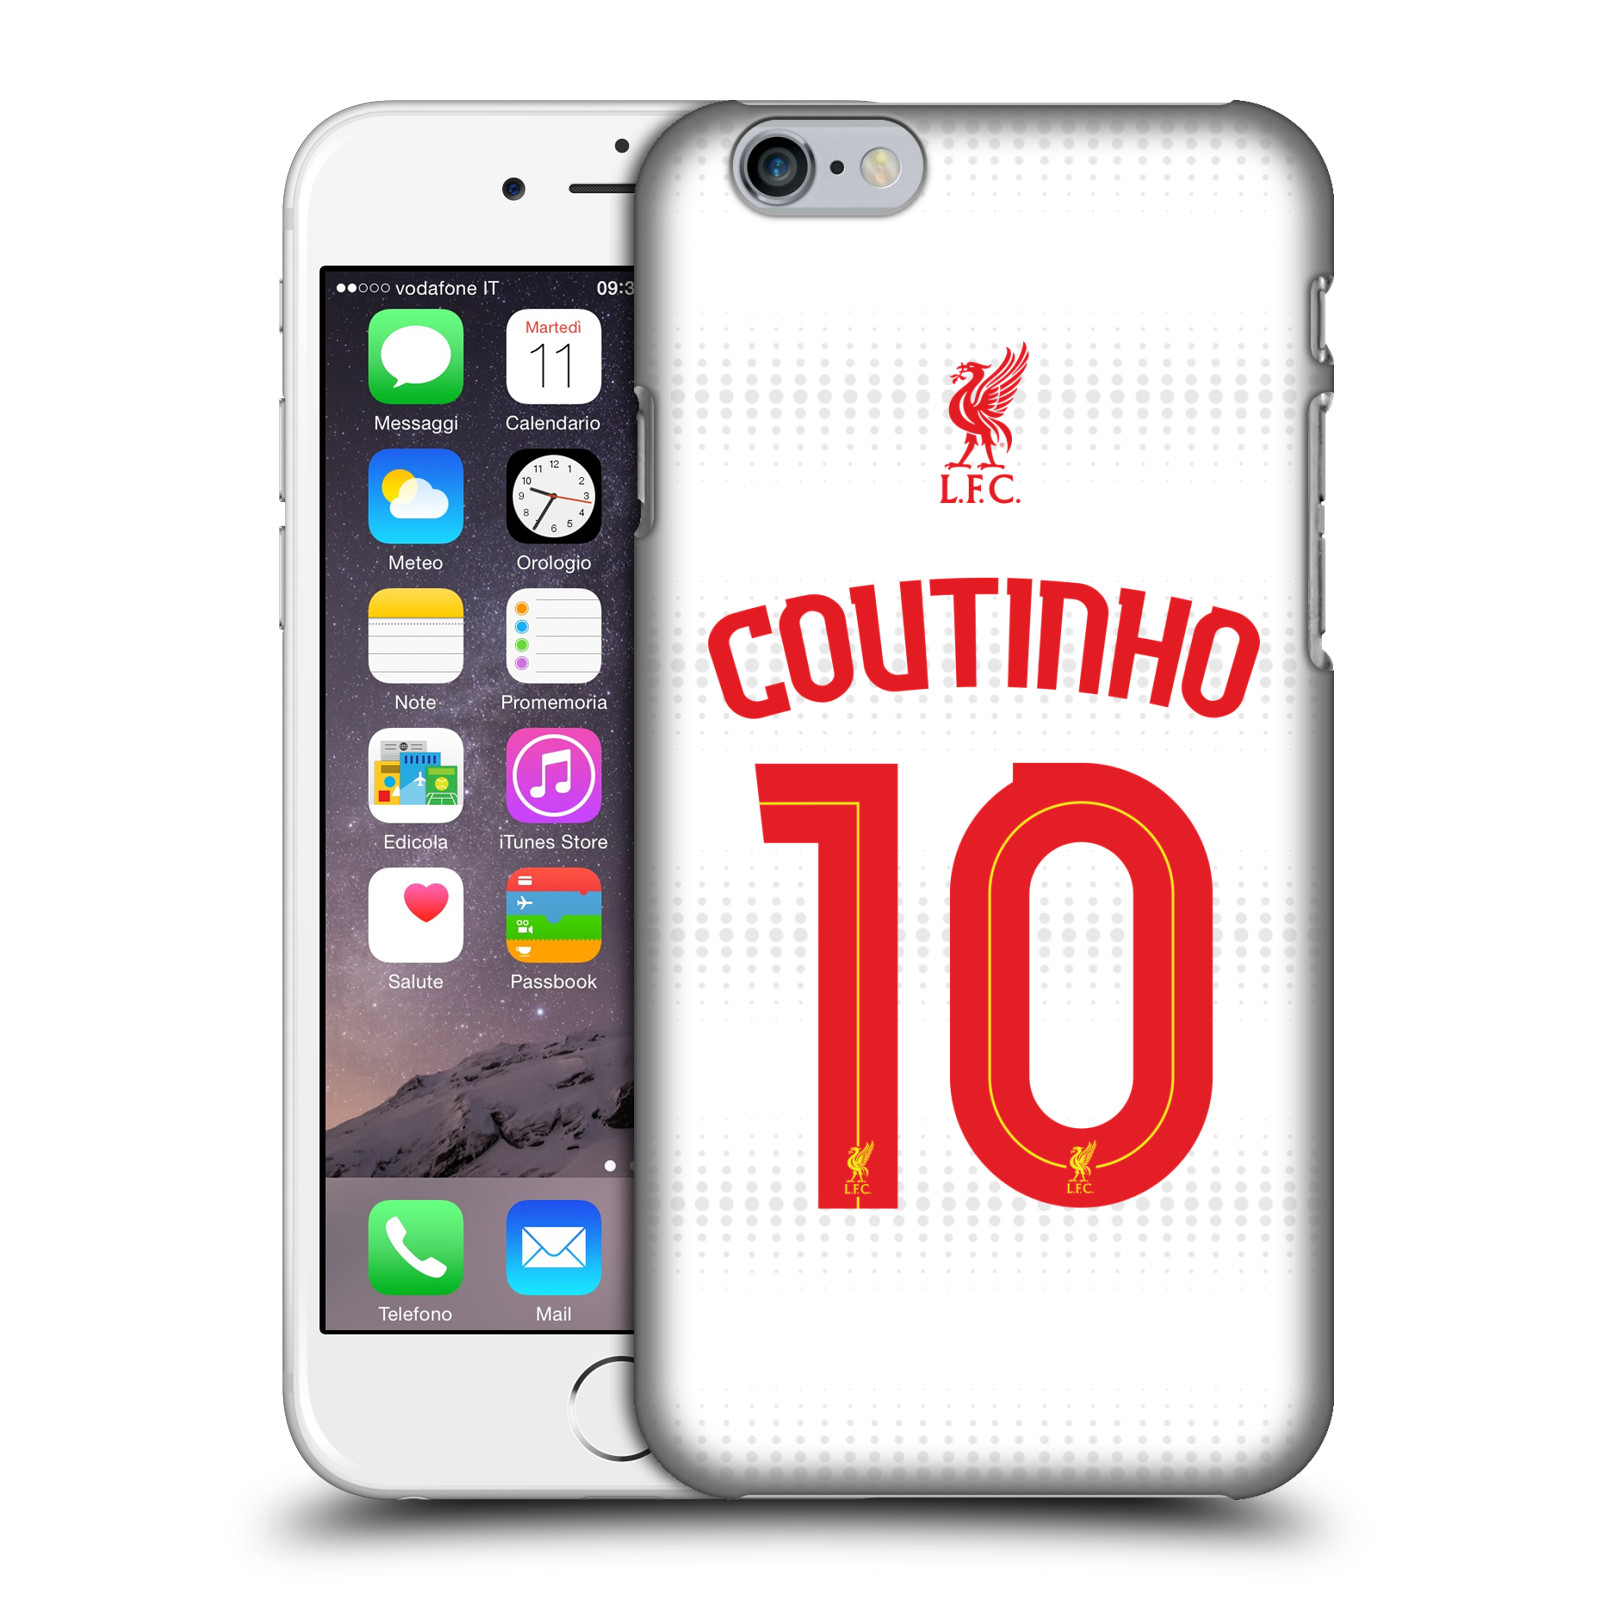 Liverpool FC LFC Shirt 2015/16-Away Shirt White Coutinho